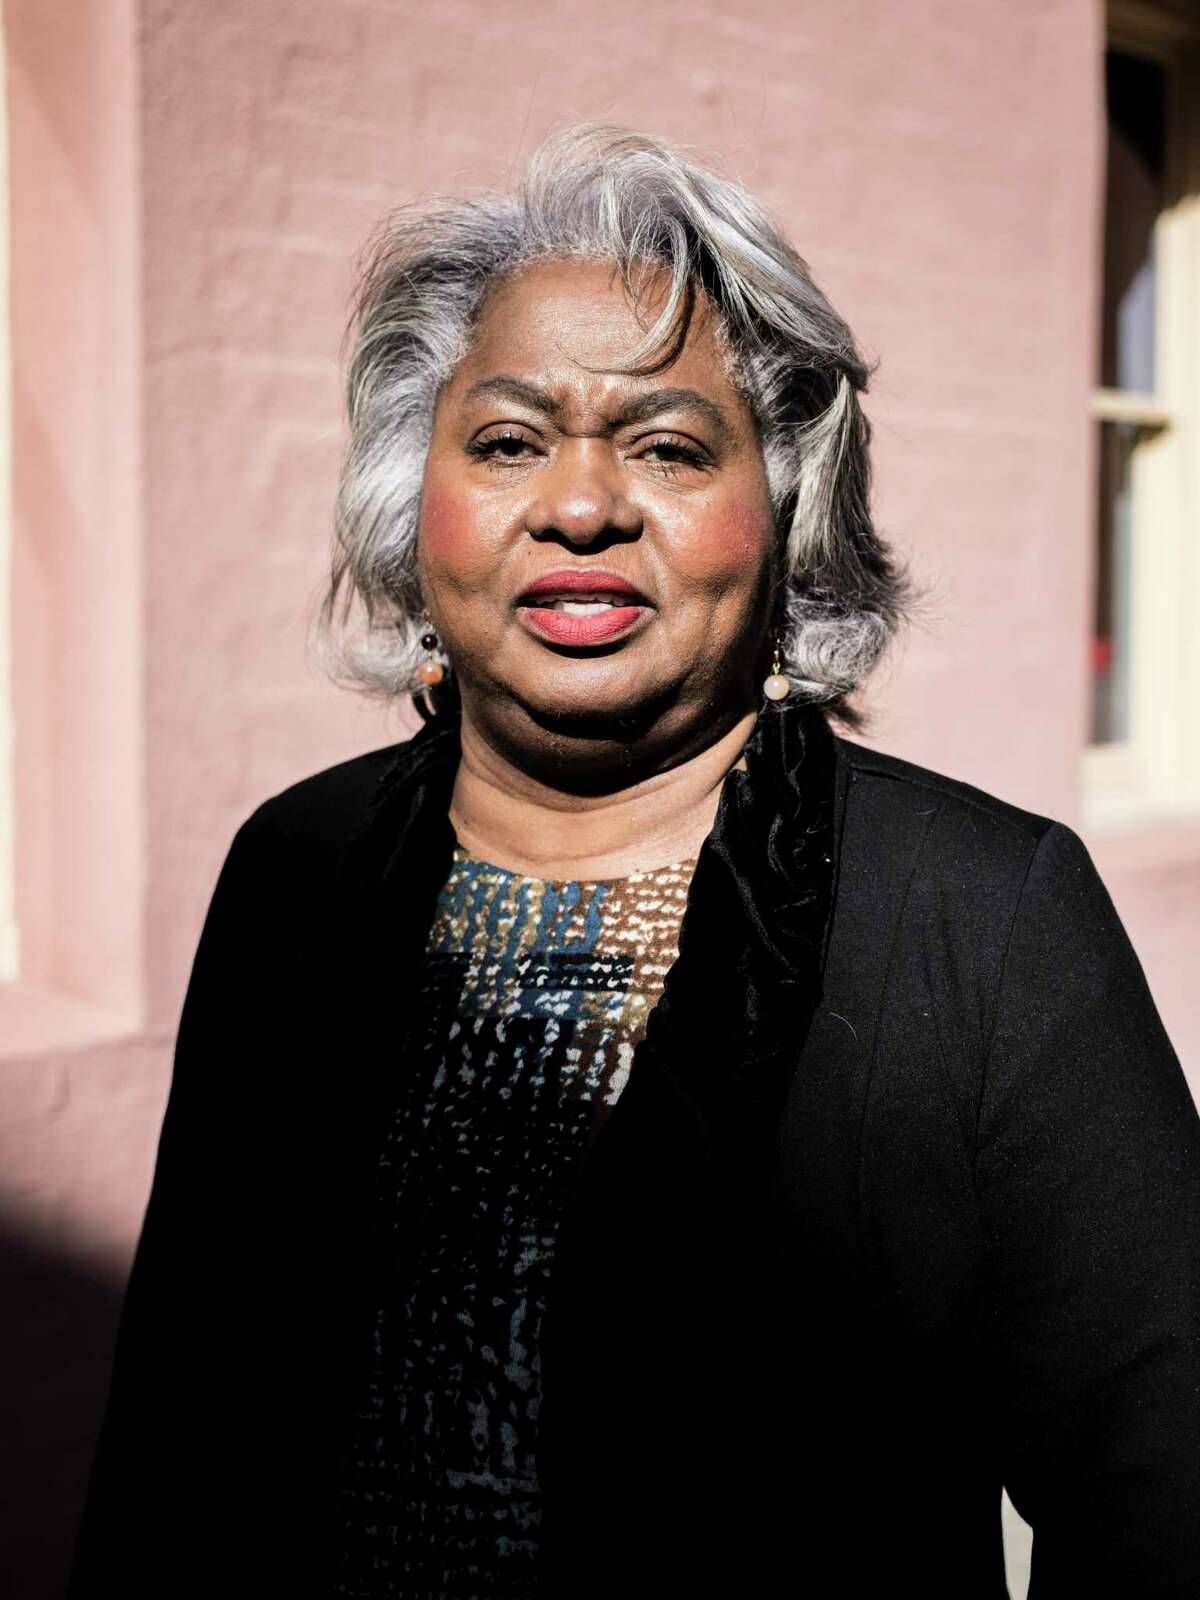 State Rep. Barbara Gervin-Hawkins, D-San Antonio, is a co-founder of the George Gervin Academy, an East Side charter school.